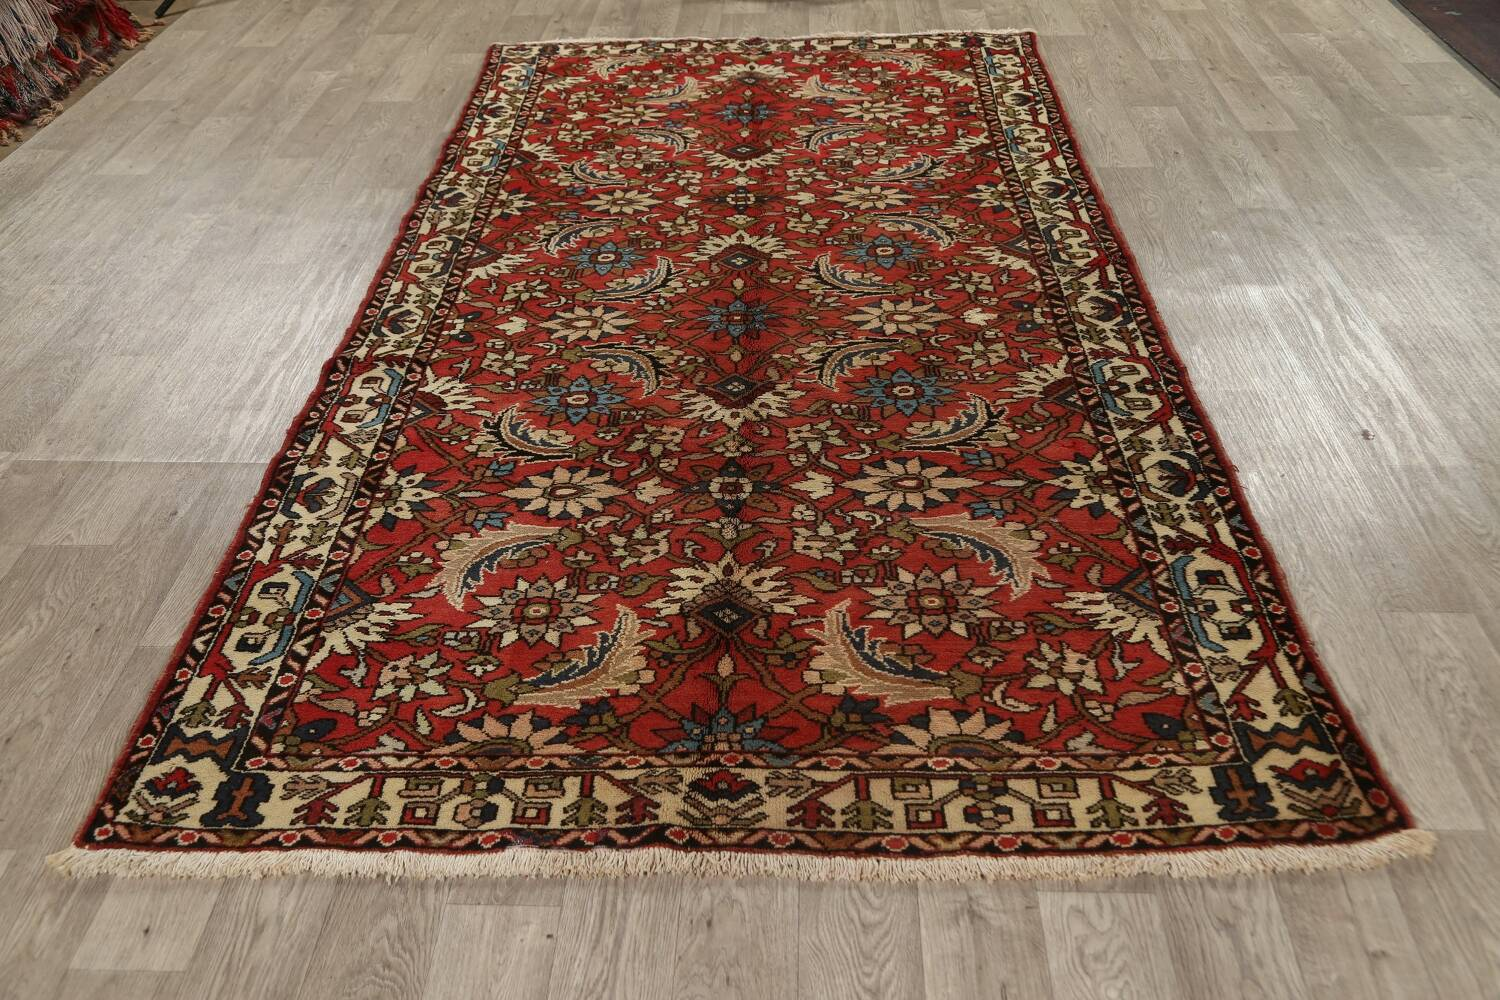 All-Over Floral Bakhtiari Persian Area Rug 5x10 image 15